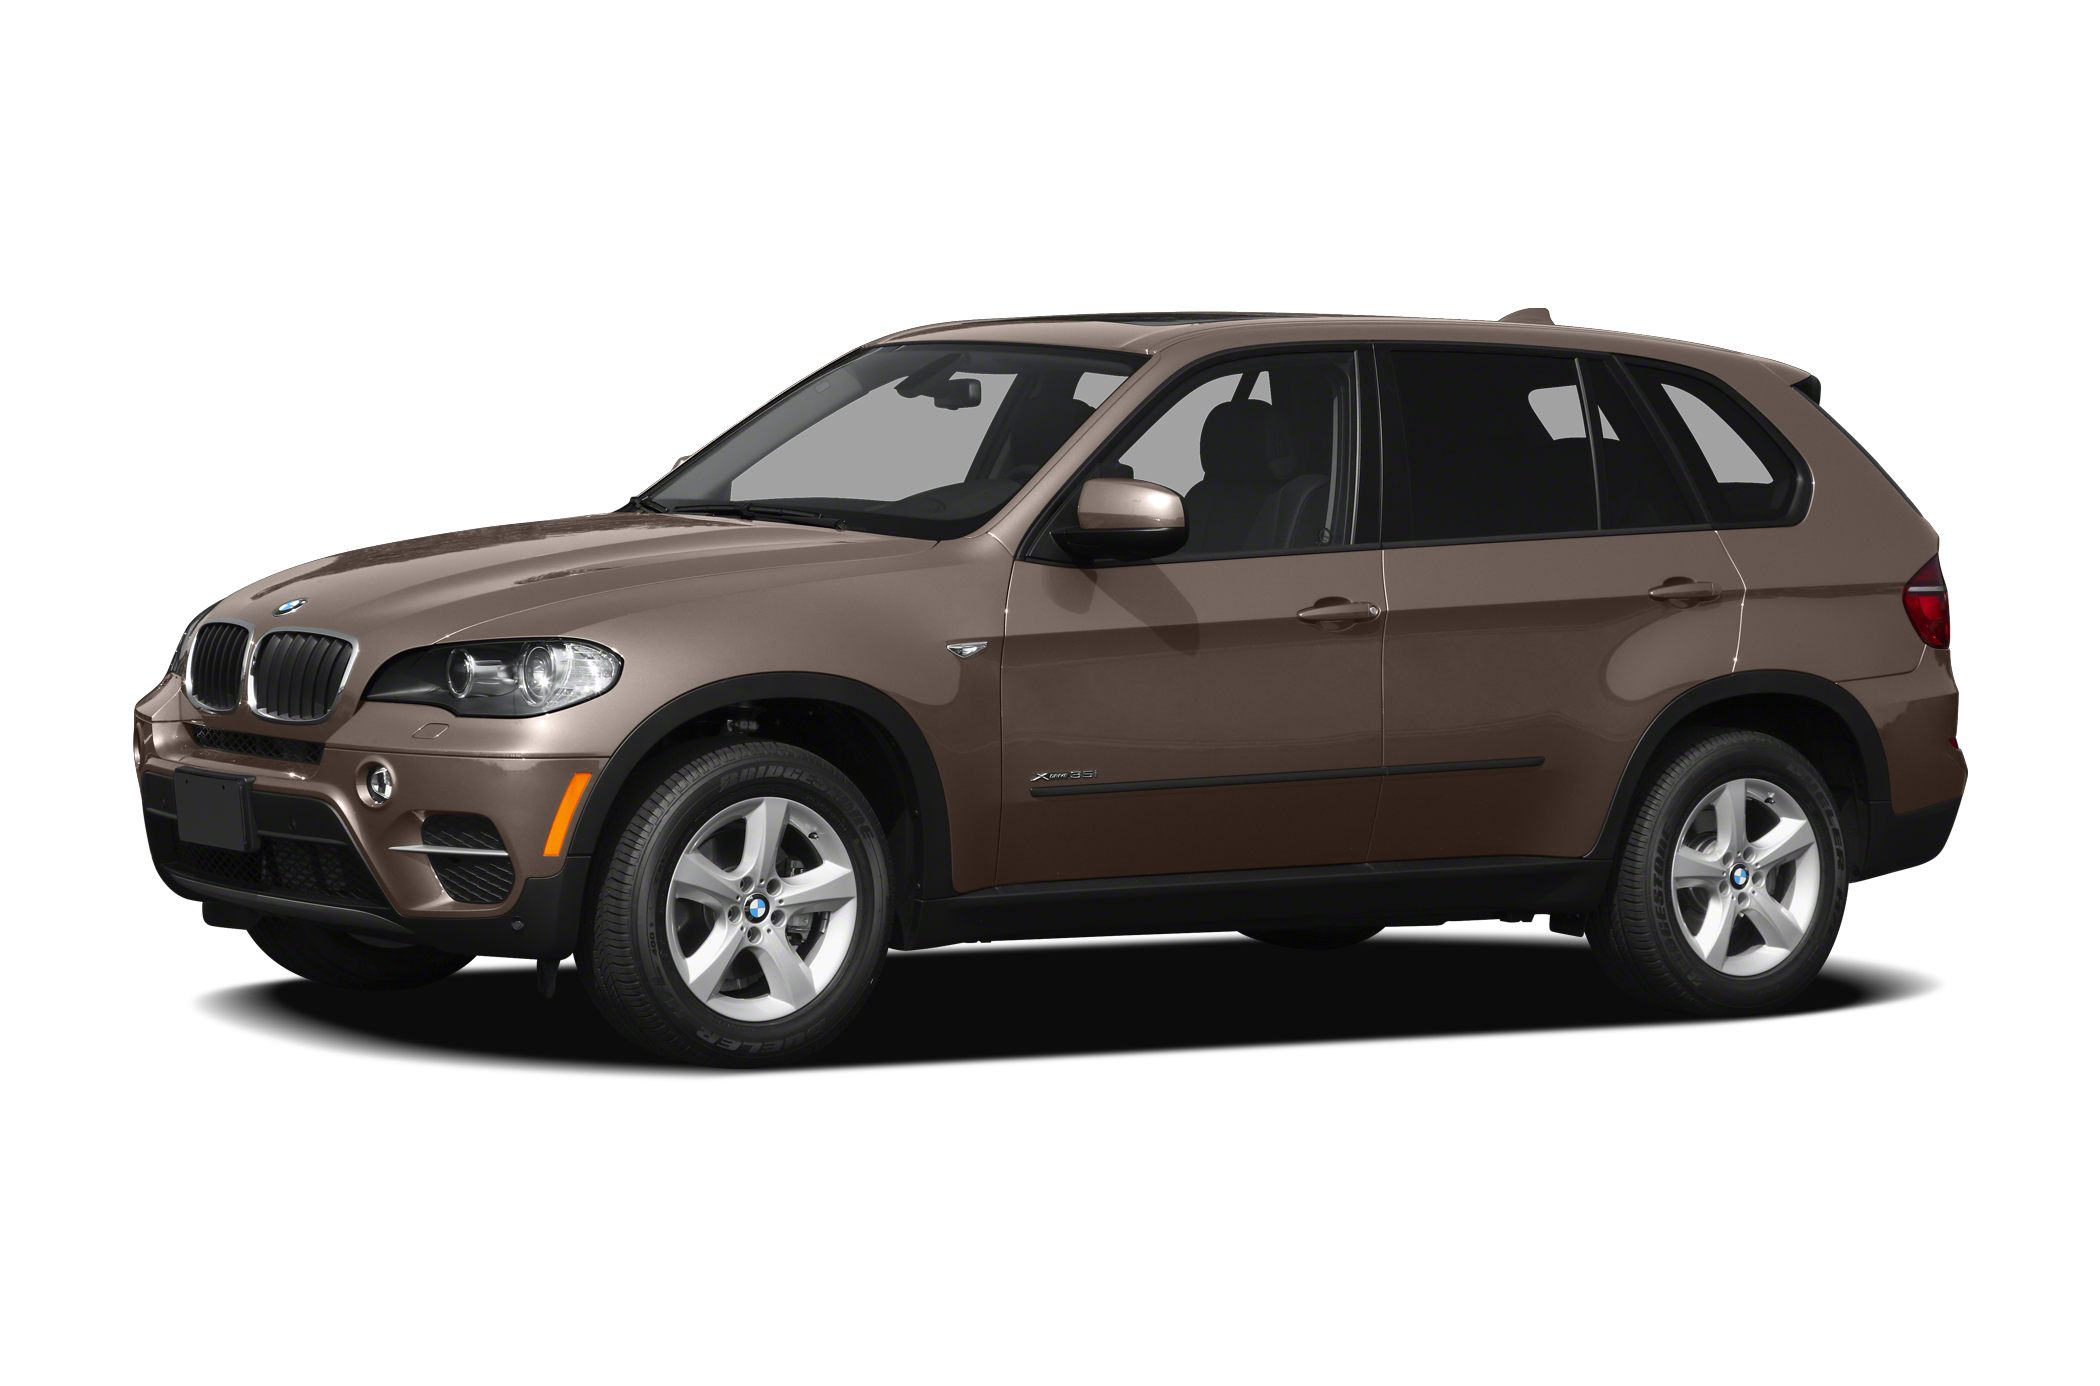 2012 BMW X5 XDrive35i SUV for sale in Wayne for $0 with 0 miles